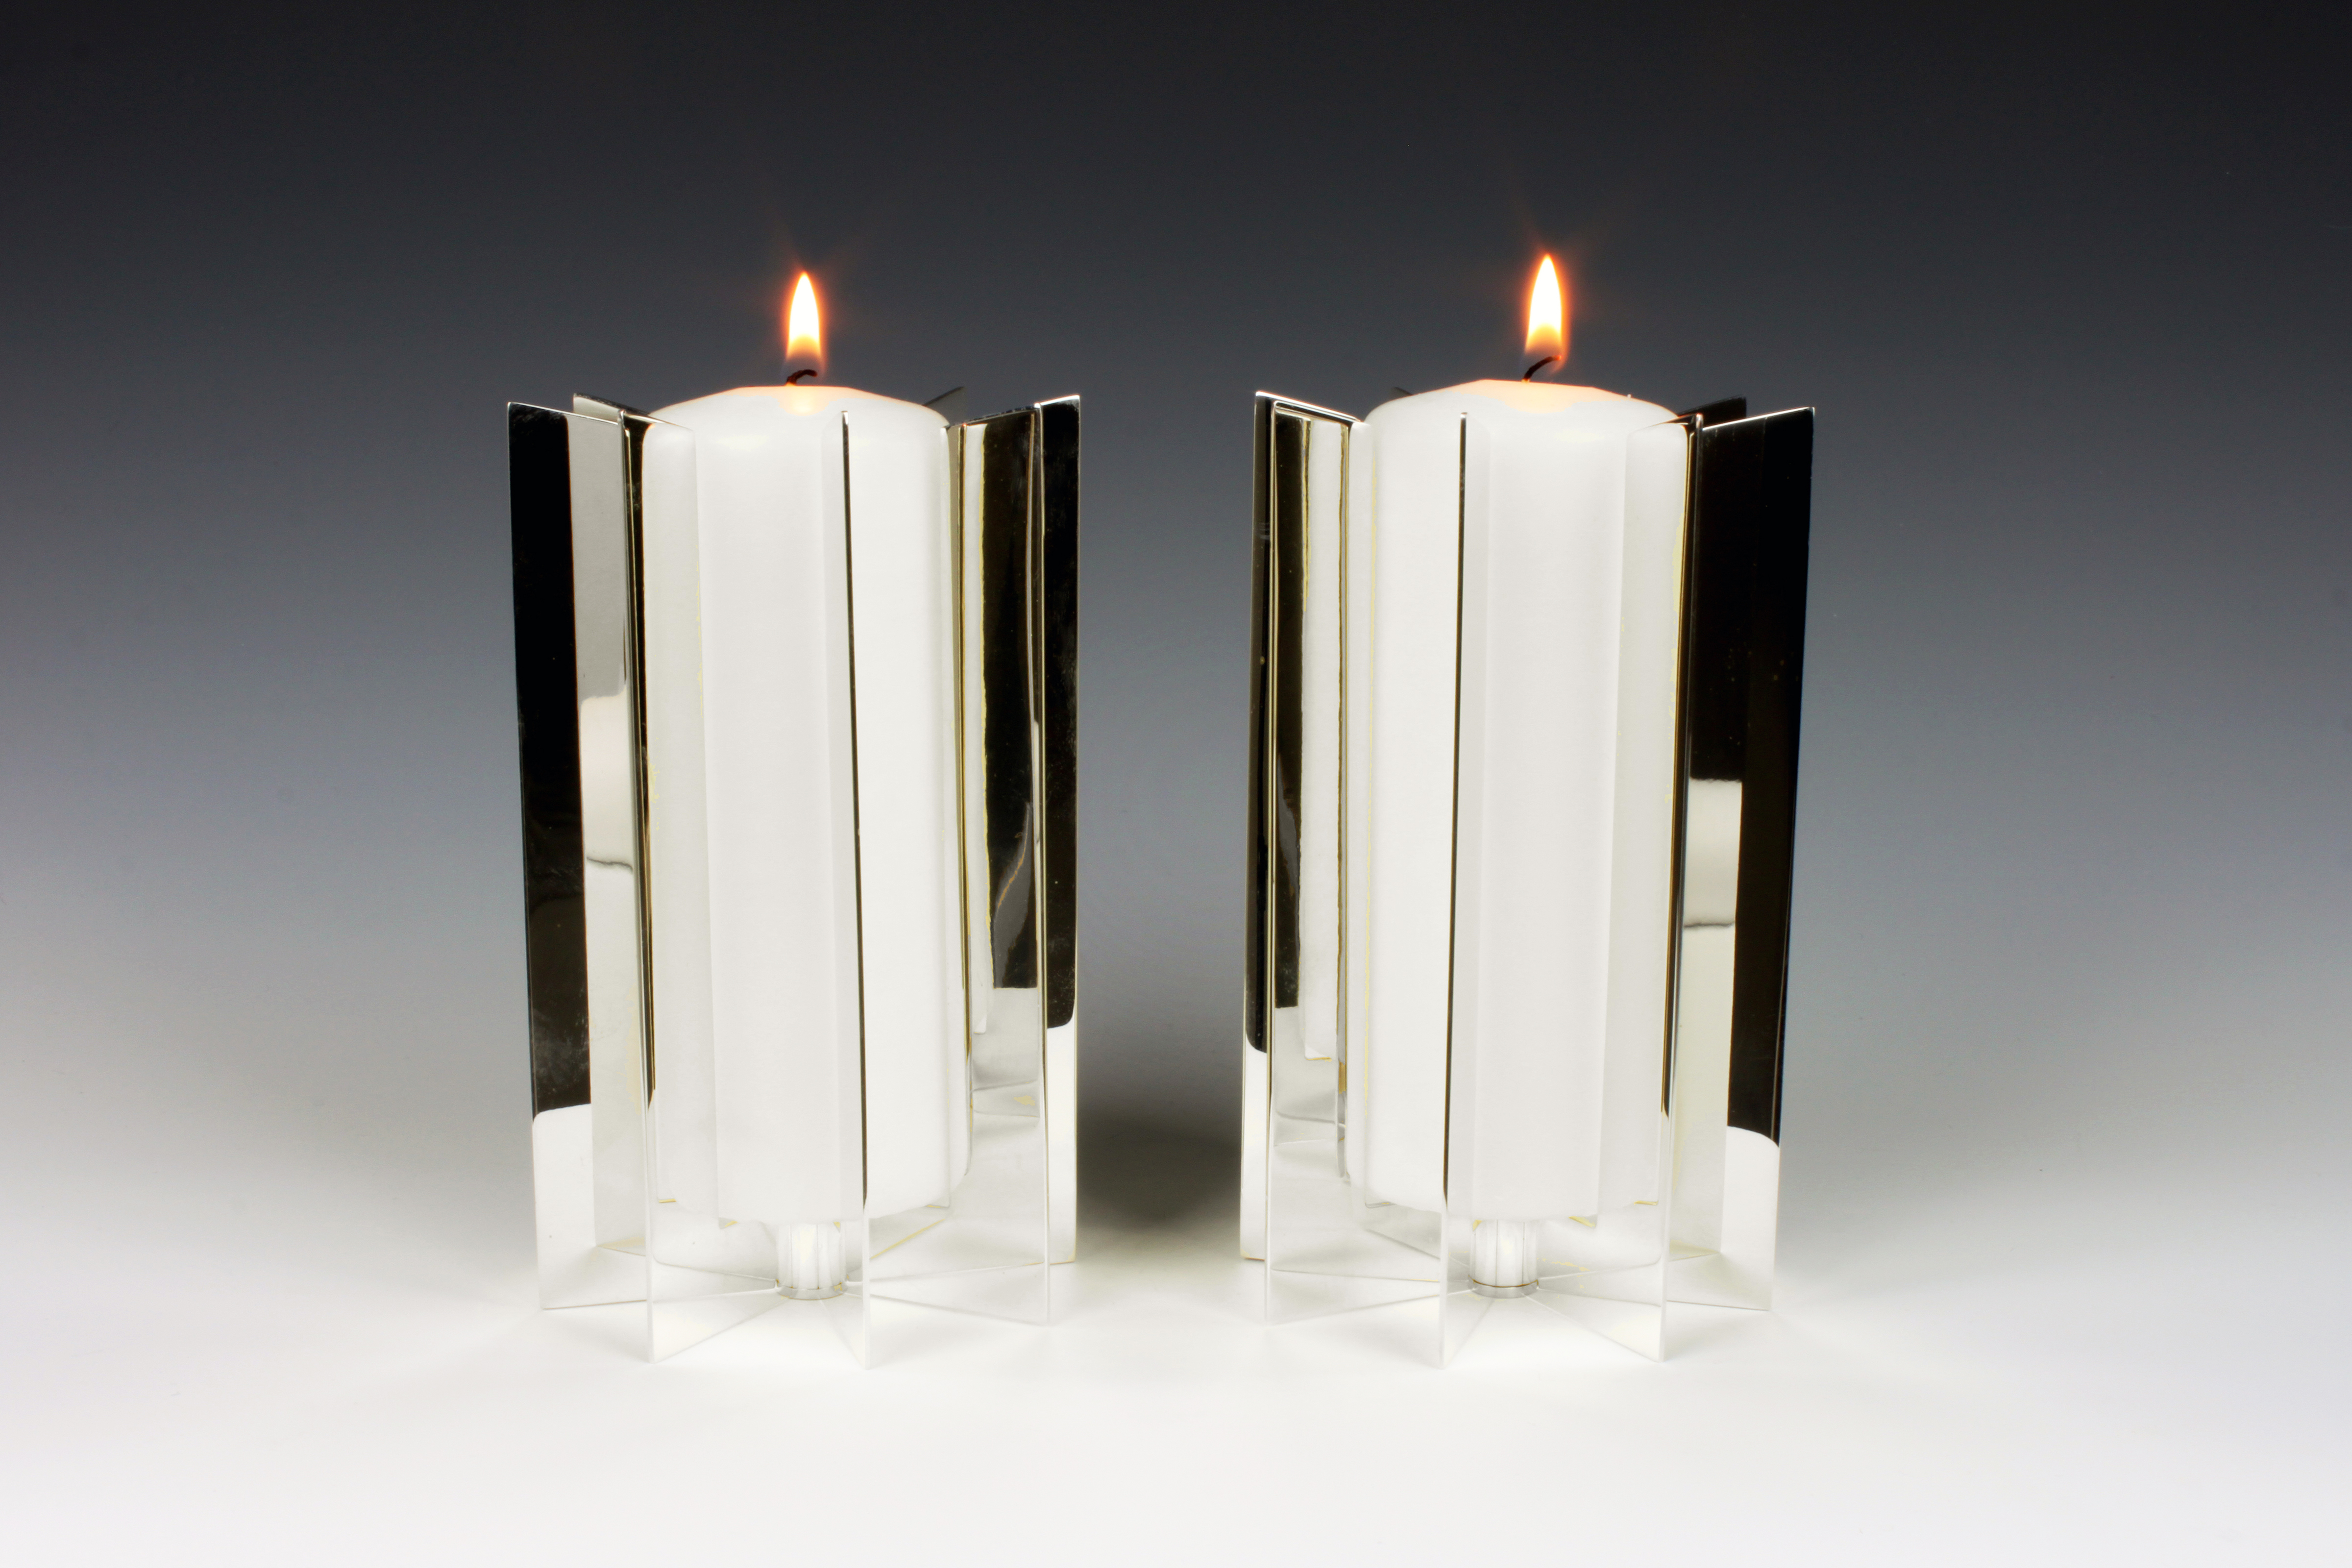 Template Candle Holders Solid 2 – Copyright BJRdesigns